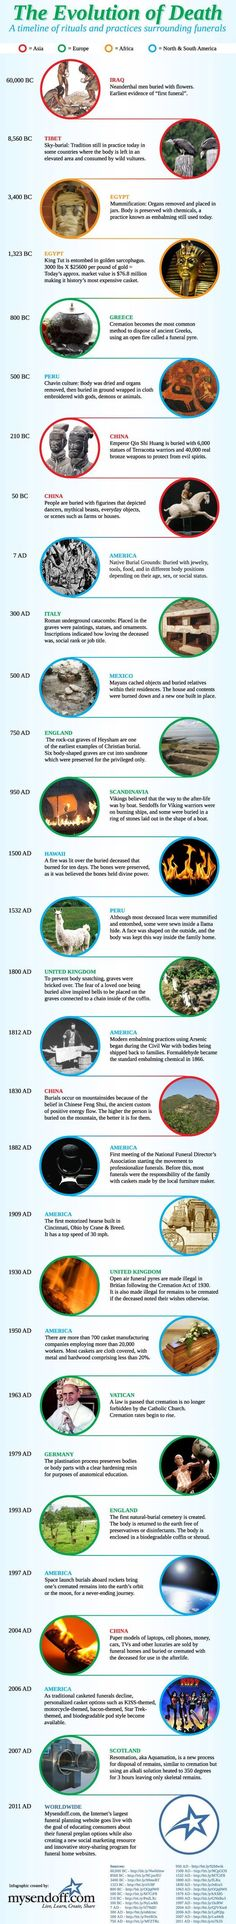 A graphical history of the evolution of death rituals throughout human history.